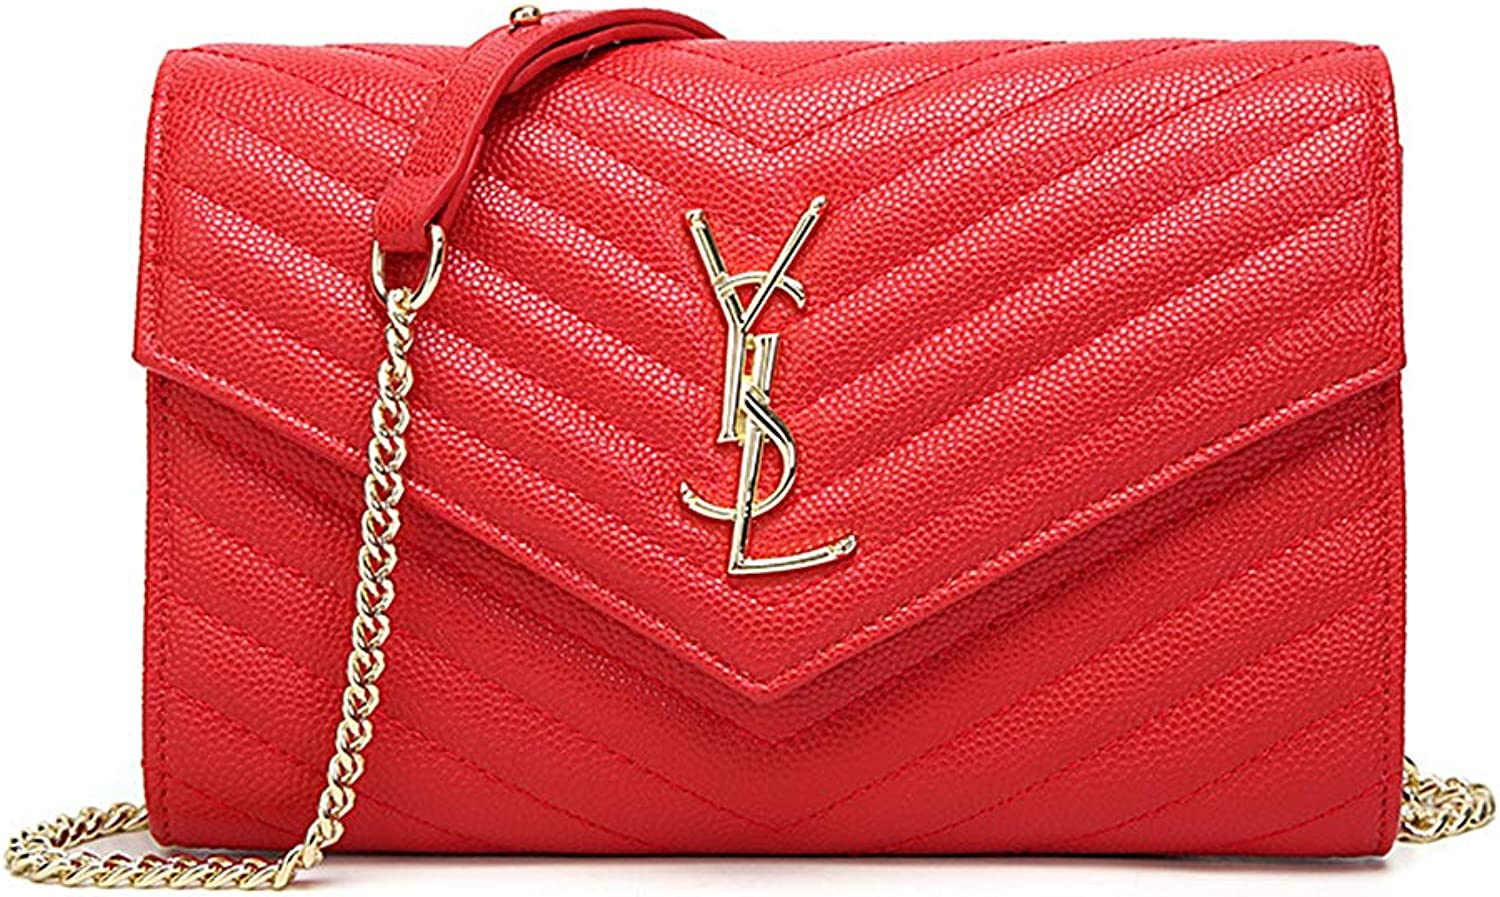 Fashion Crossbody Bag for Women Leather Quilted Shoulder Purse with golden Chain Strap (Red)